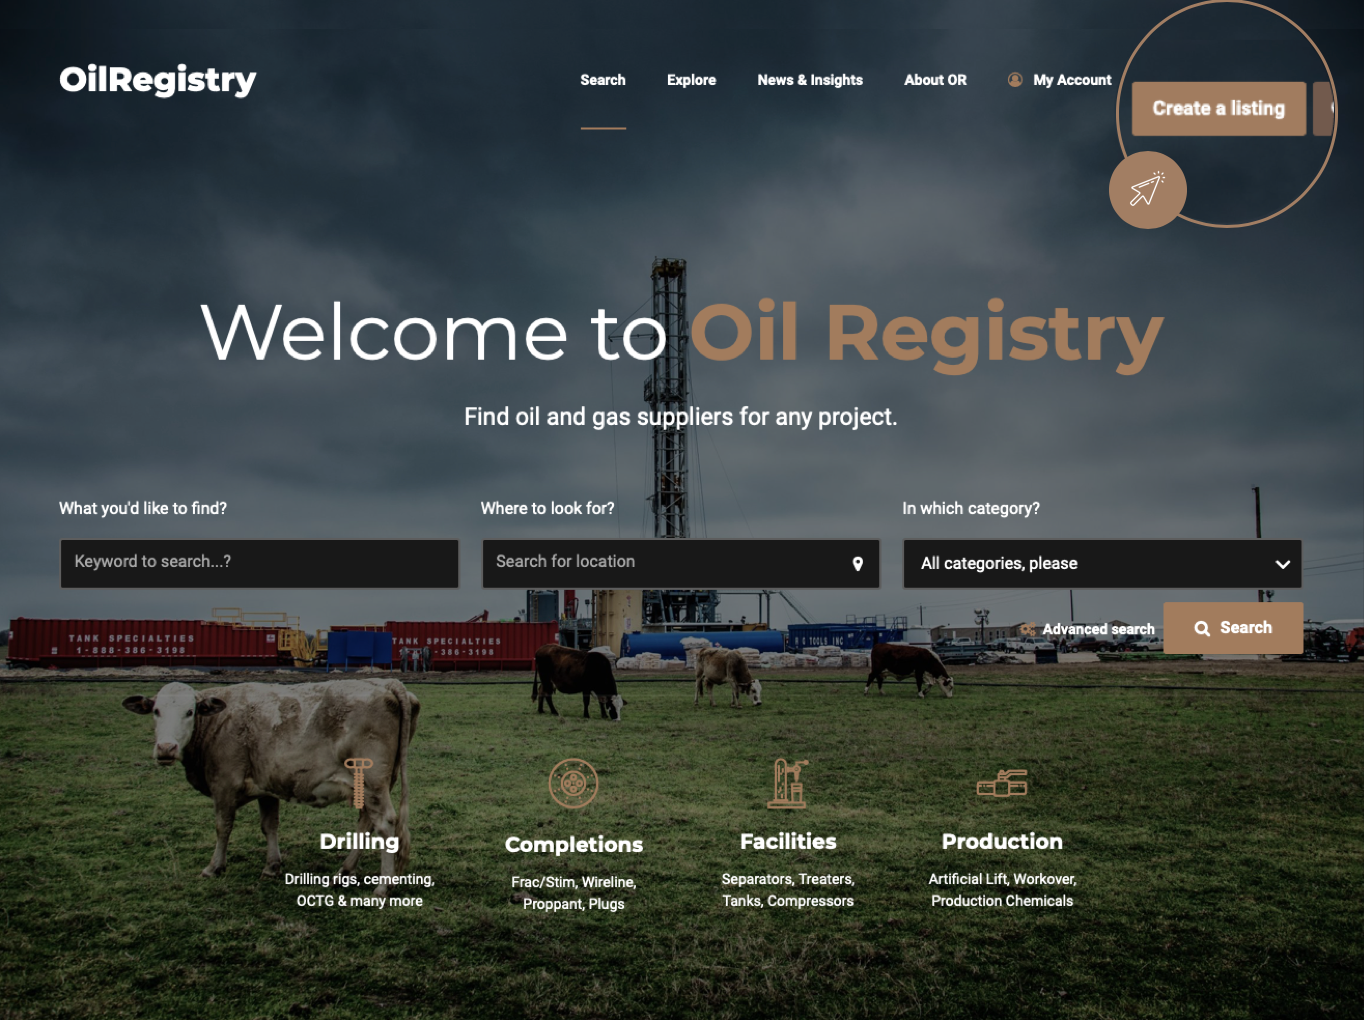 https://global.oilregistry.com/wp-content/uploads/2020/04/HowTo_Add_Listing.png